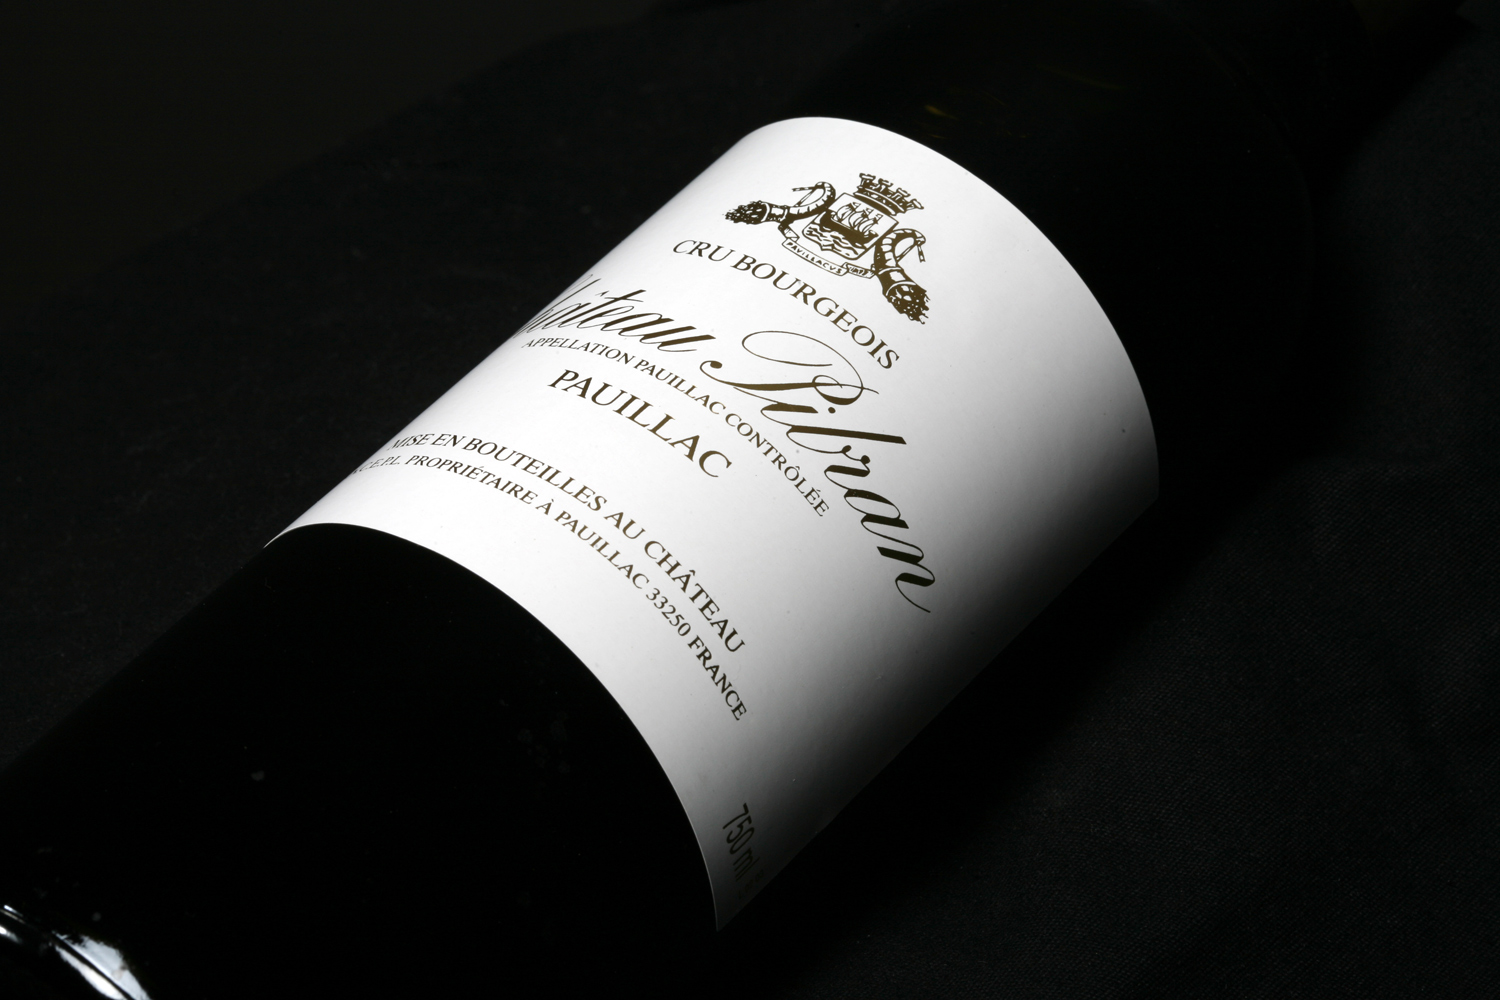 Pauillac 2010: a remarkable identity